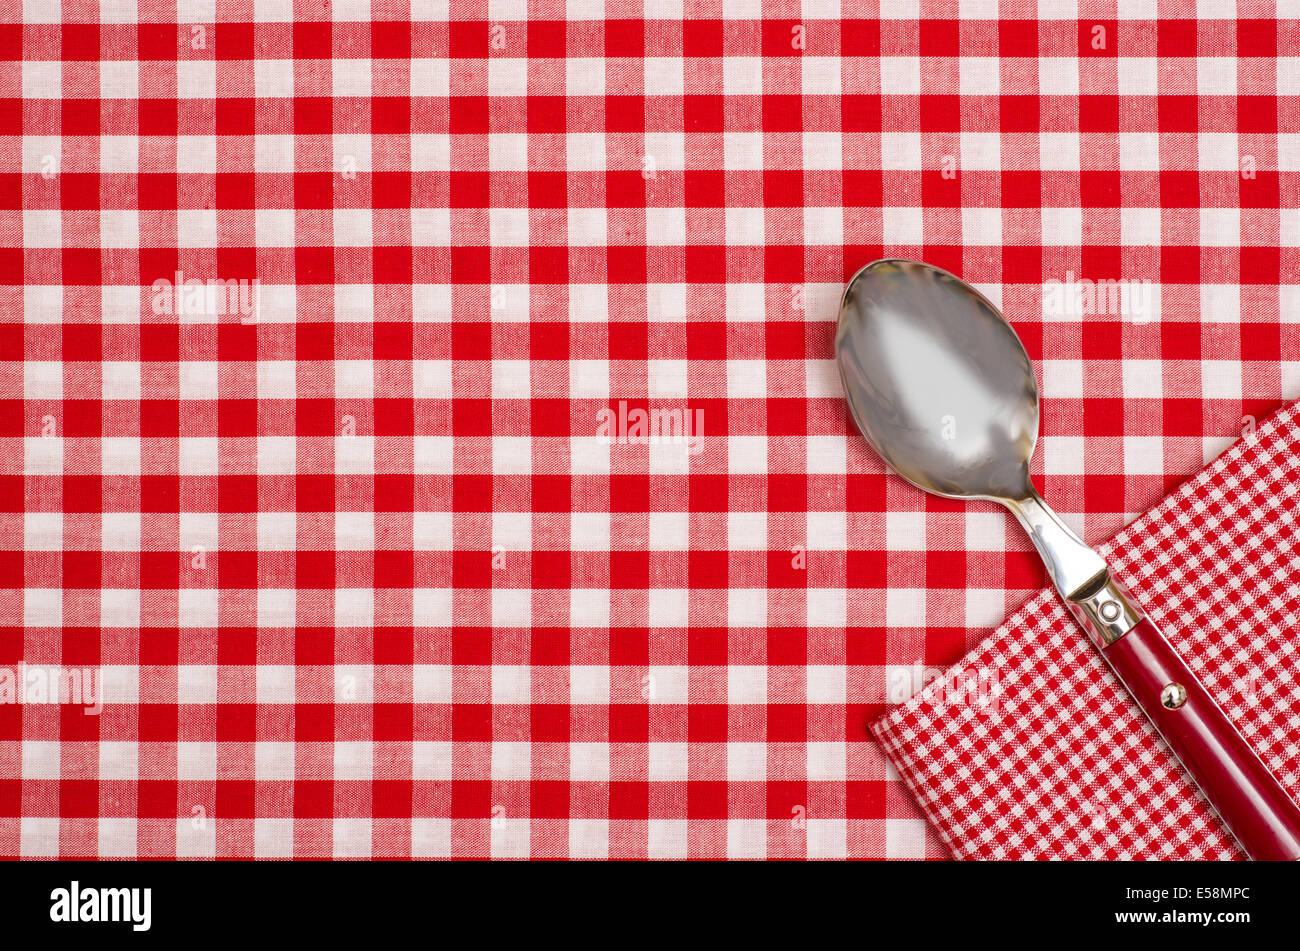 Spoon And Napkin On A Checkered Table Cloth With Red And White Checks